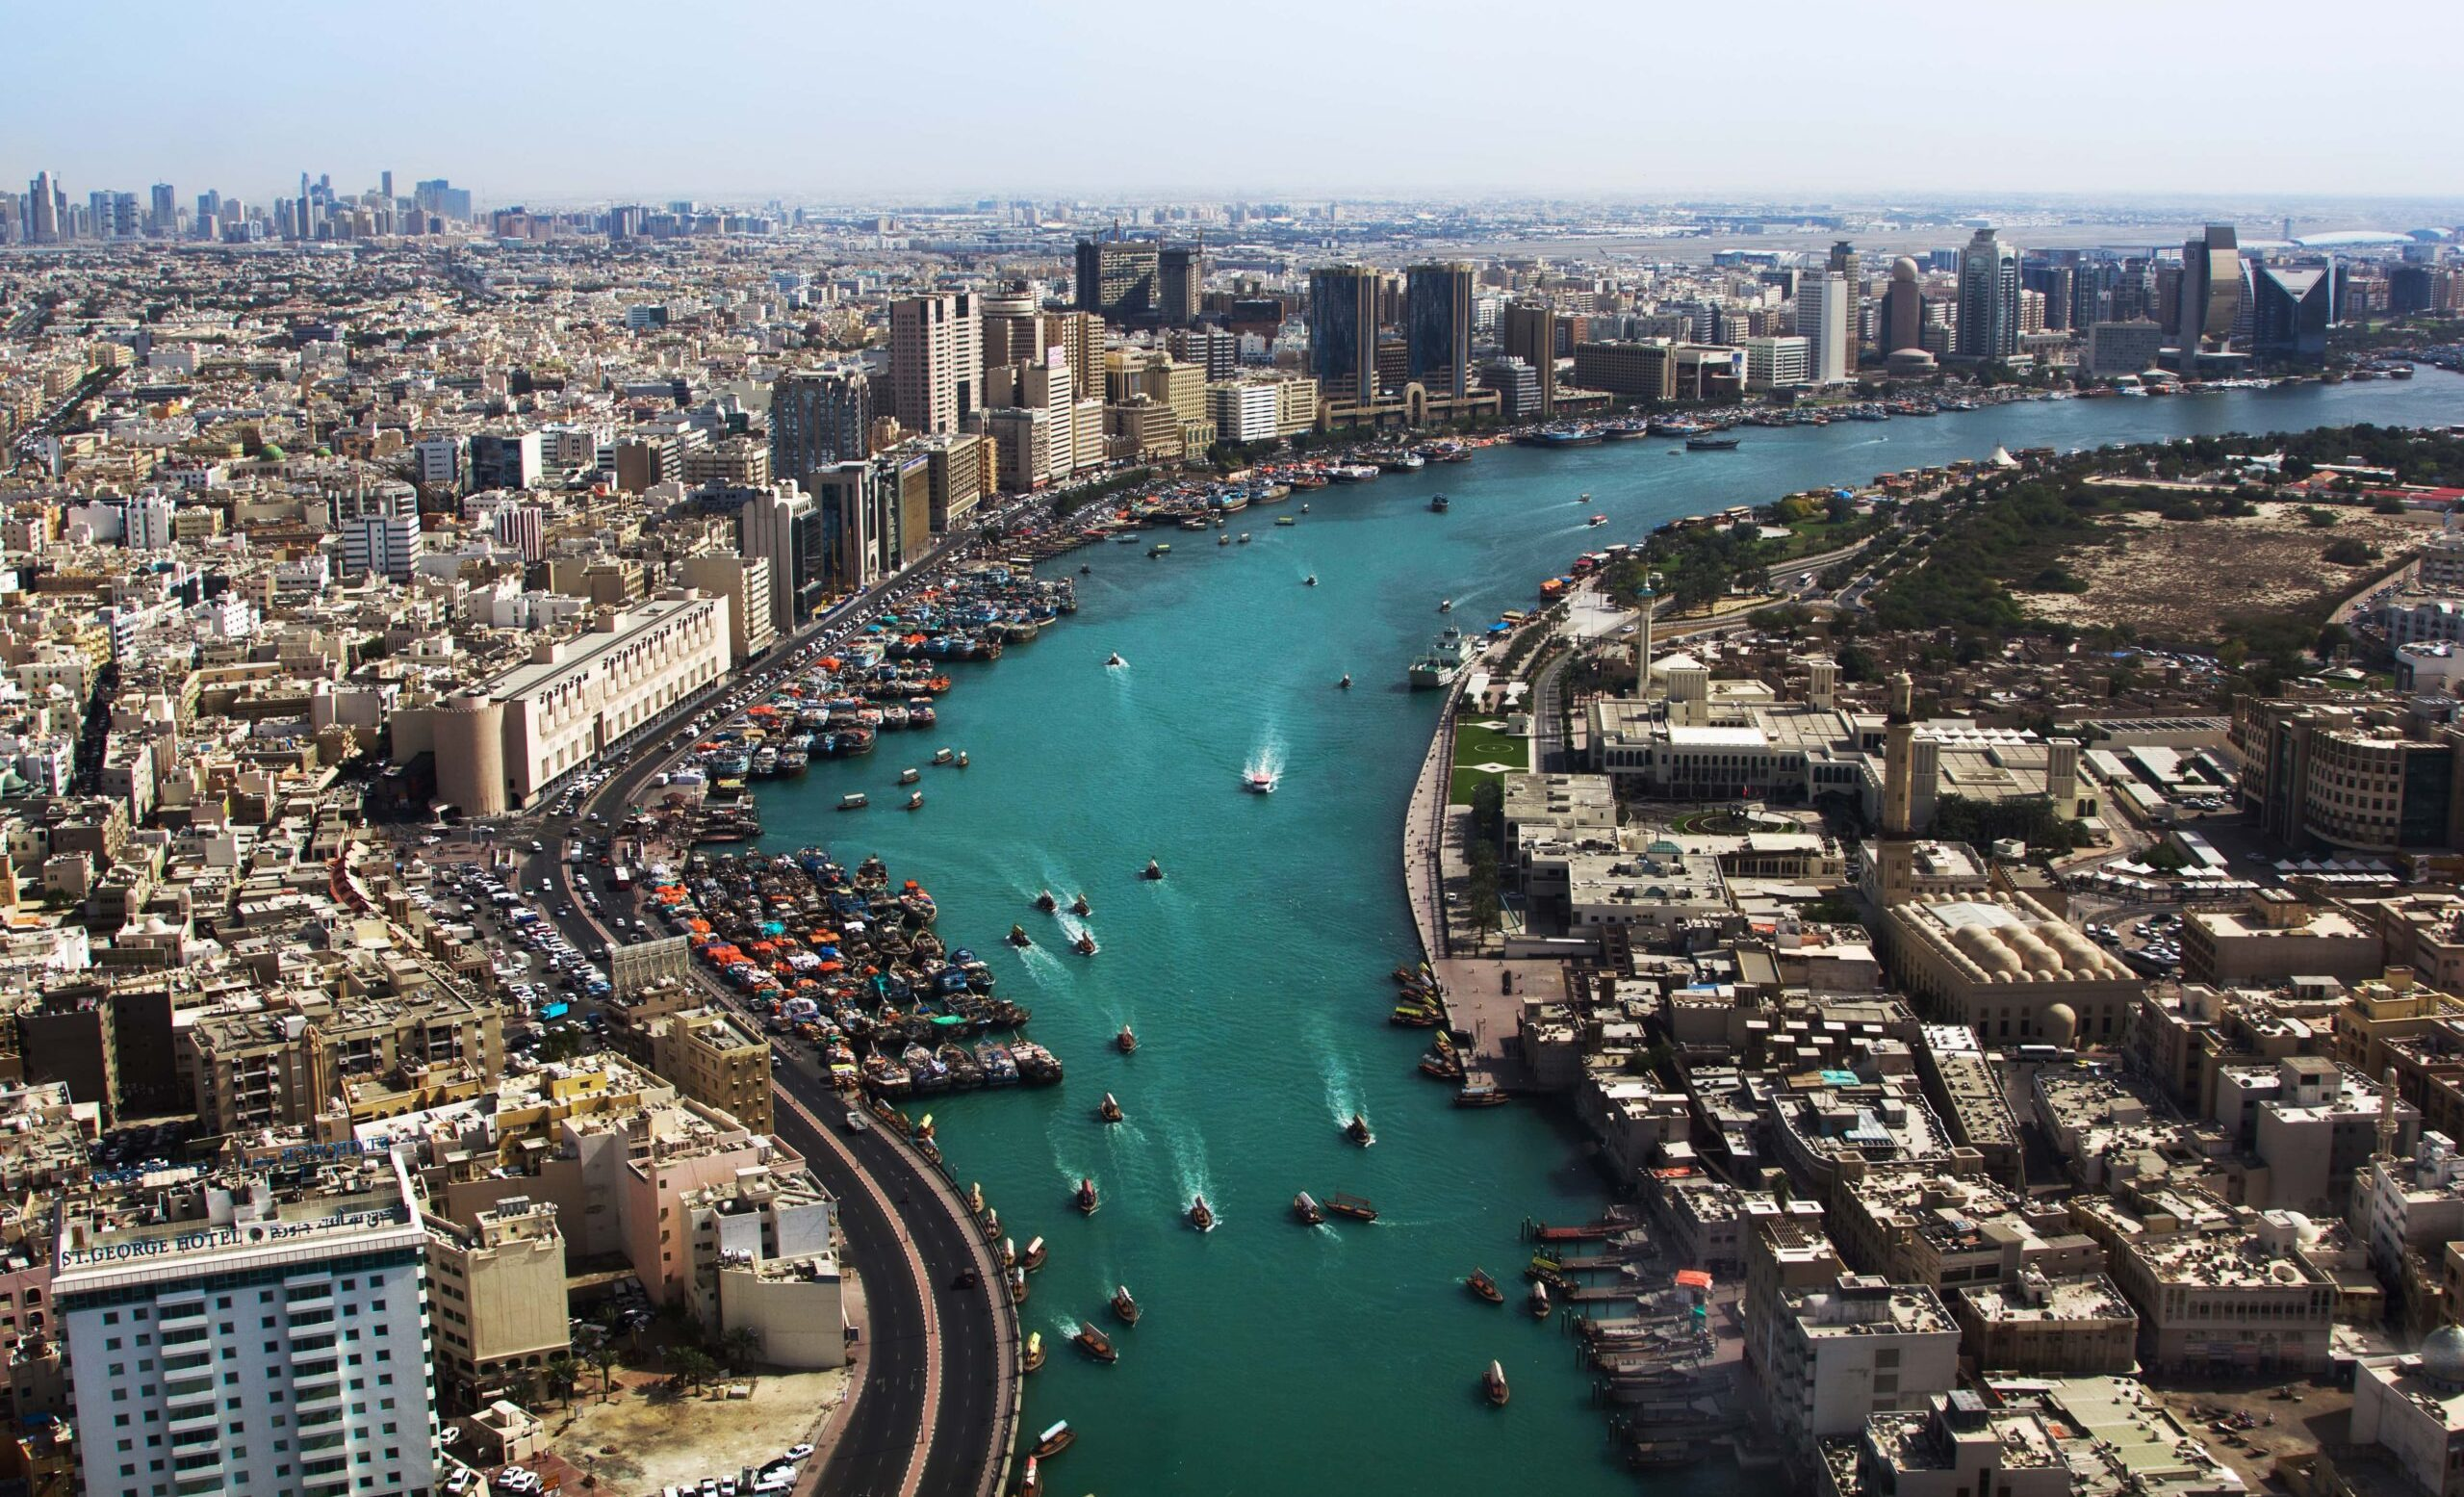 Top View of Deira Creek with boats across the abra